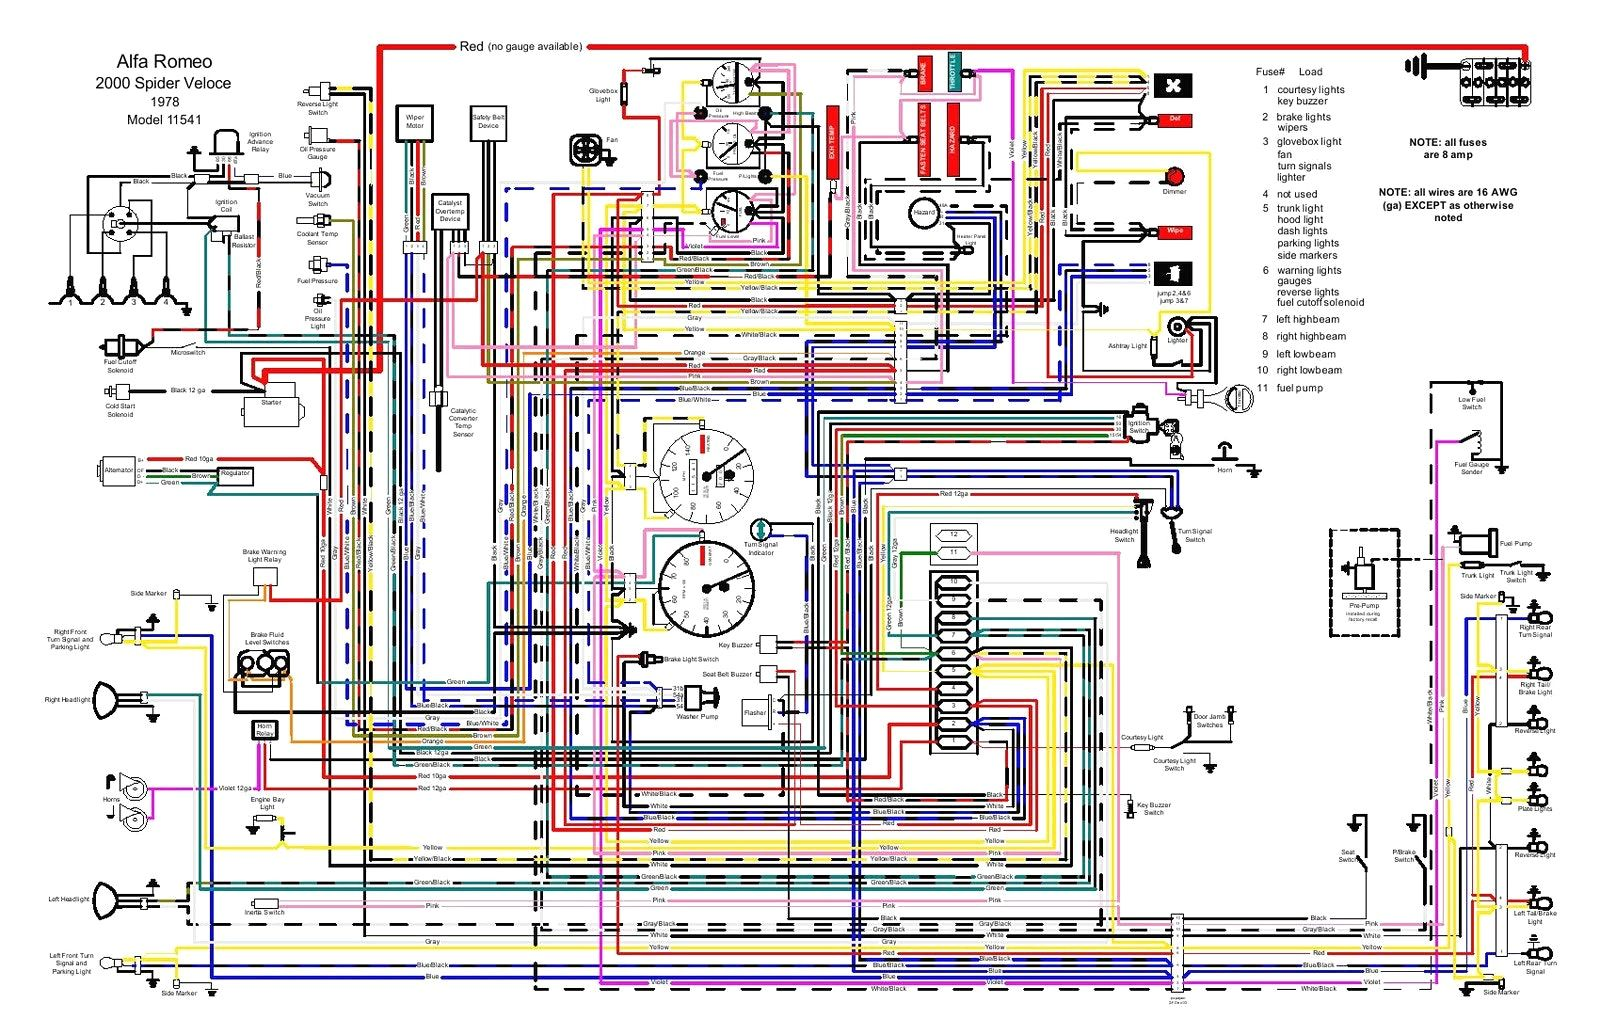 A223D1 Alfa Romeo 159 Wiring Diagram | Wiring Resources on